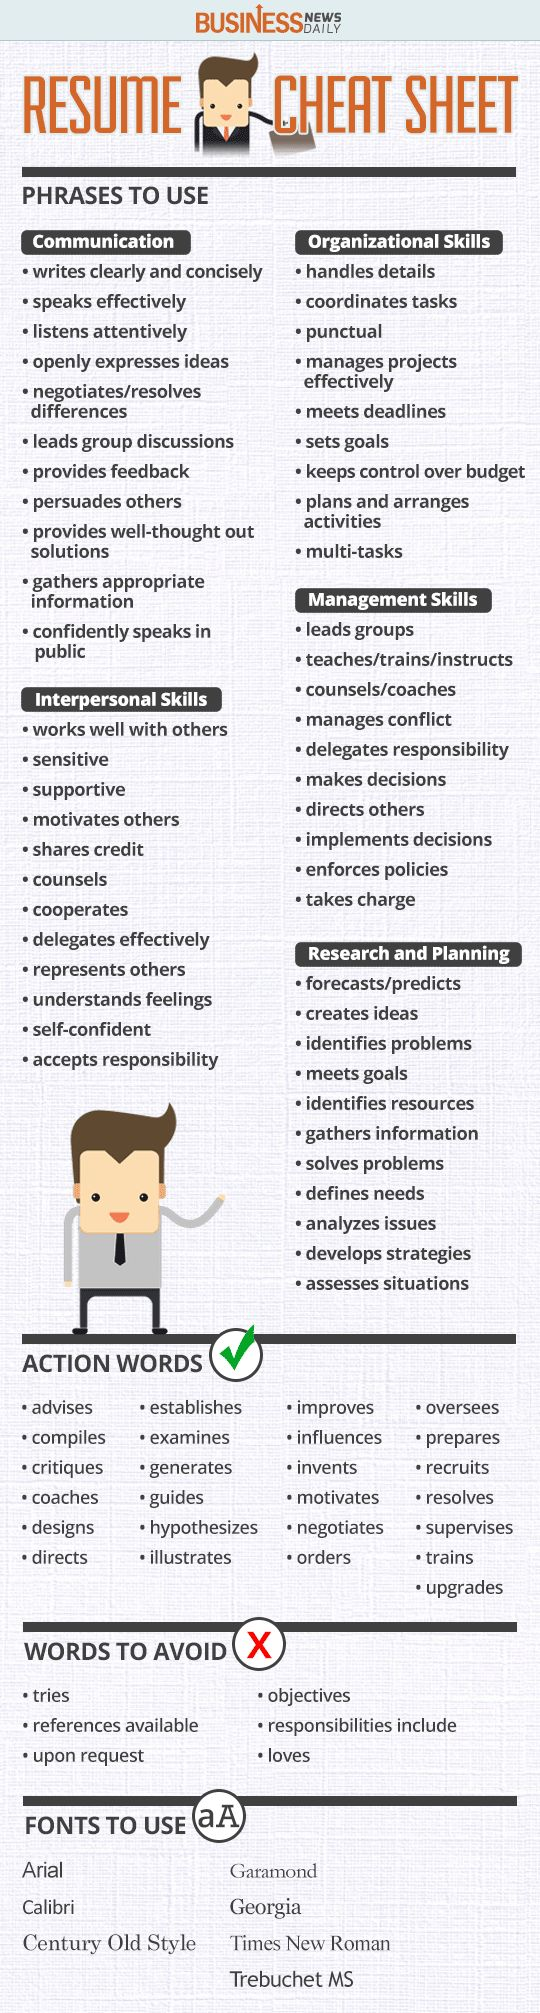 Opposenewapstandardsus  Remarkable  Ideas About Resume On Pinterest  Cv Format Resume Cv And  With Fetching Resume Cheat Sheet Infographic Andrews Almost Done With A Complete Unit On Employment Which With Breathtaking Fire Fighter Resume Also Montessori Teacher Resume In Addition Sample Resumes Objectives And Free Blank Resume As Well As Firefighter Job Description For Resume Additionally Skills Section Resume Example From Pinterestcom With Opposenewapstandardsus  Fetching  Ideas About Resume On Pinterest  Cv Format Resume Cv And  With Breathtaking Resume Cheat Sheet Infographic Andrews Almost Done With A Complete Unit On Employment Which And Remarkable Fire Fighter Resume Also Montessori Teacher Resume In Addition Sample Resumes Objectives From Pinterestcom